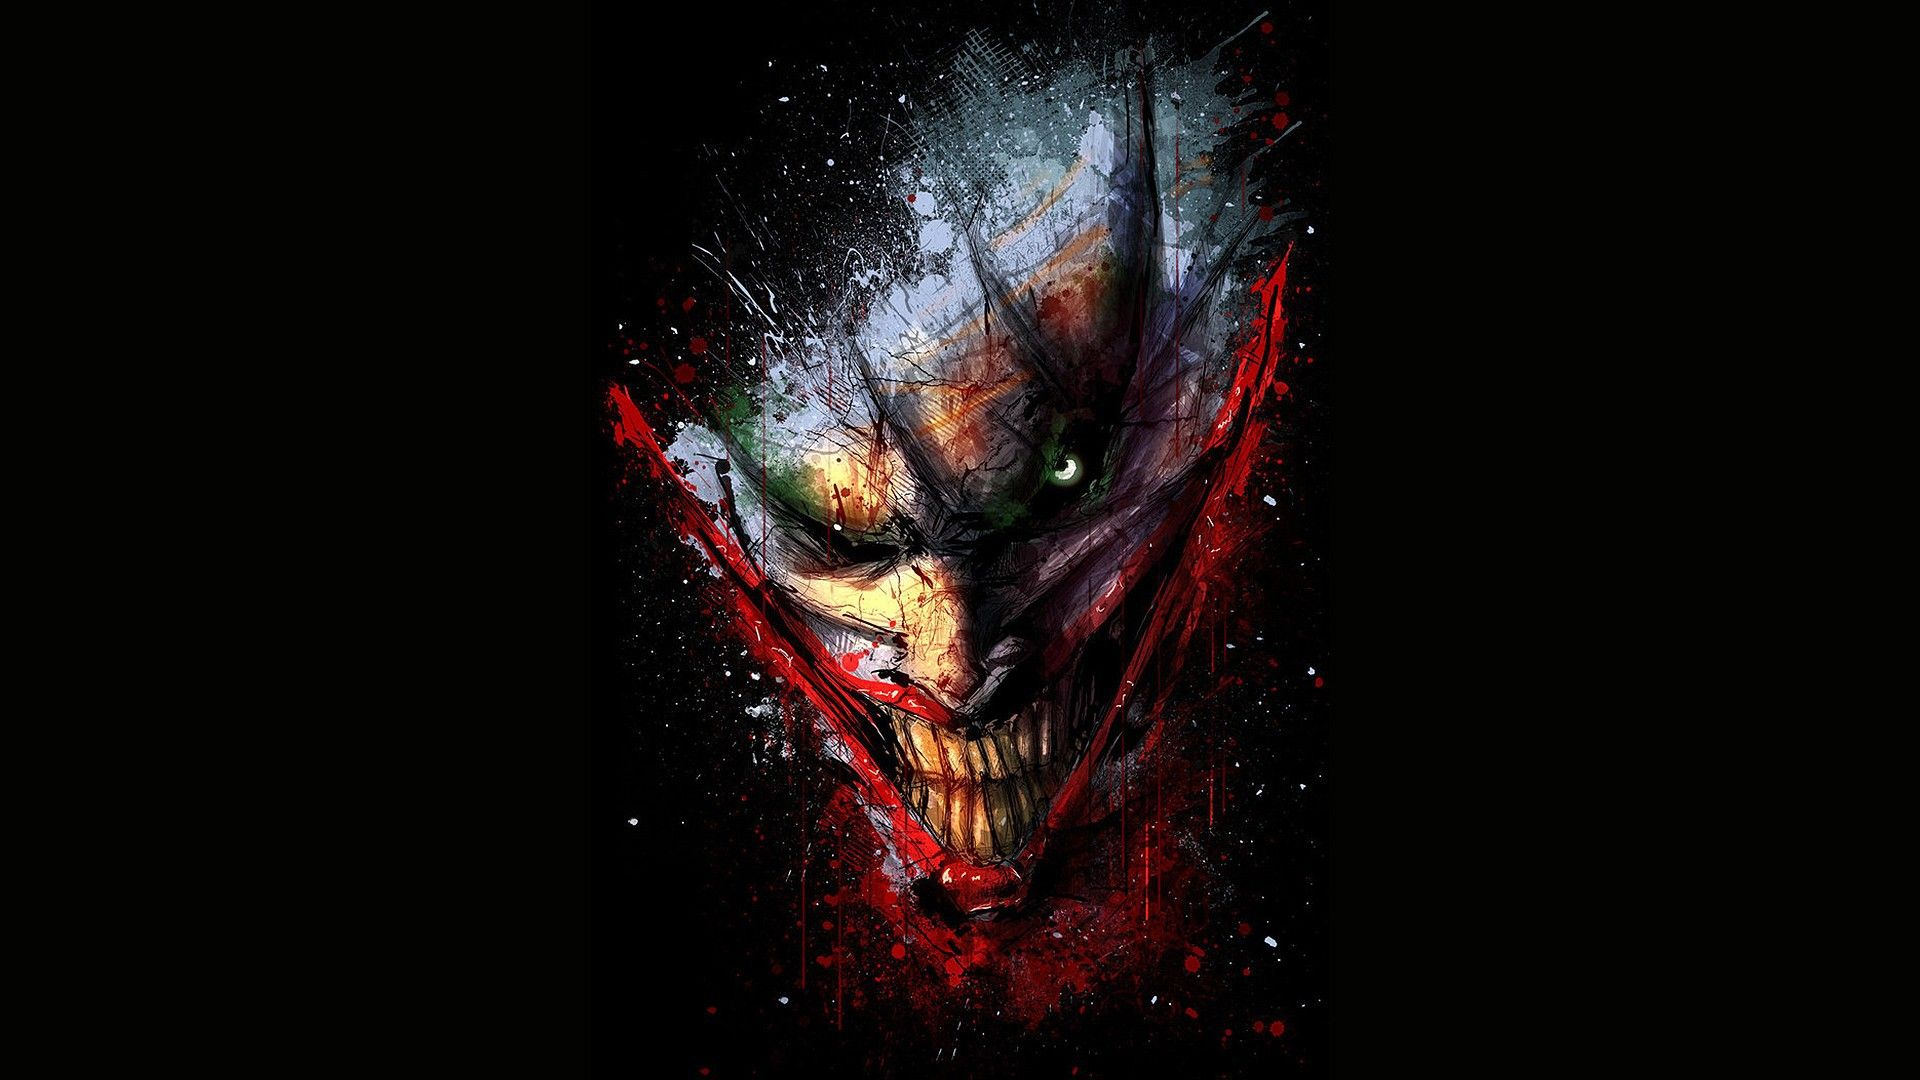 Collection of Dc Comics Wallpapers on HDWallpapers